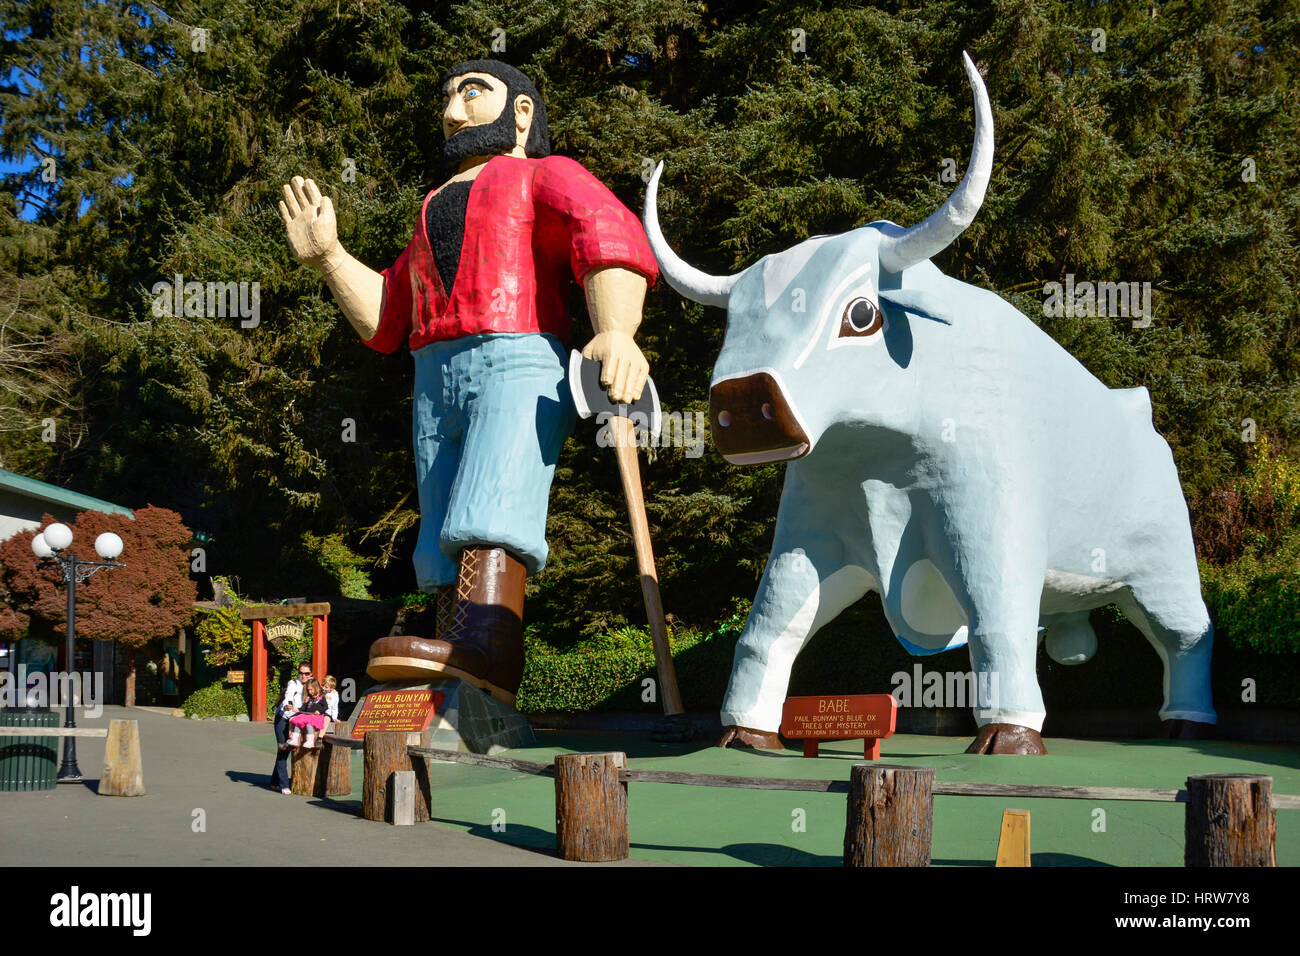 Family taking selfie with statues of Paul Bunyan and his ox Babe at Trees of Mystery in the Redwoods of northern - Stock Image